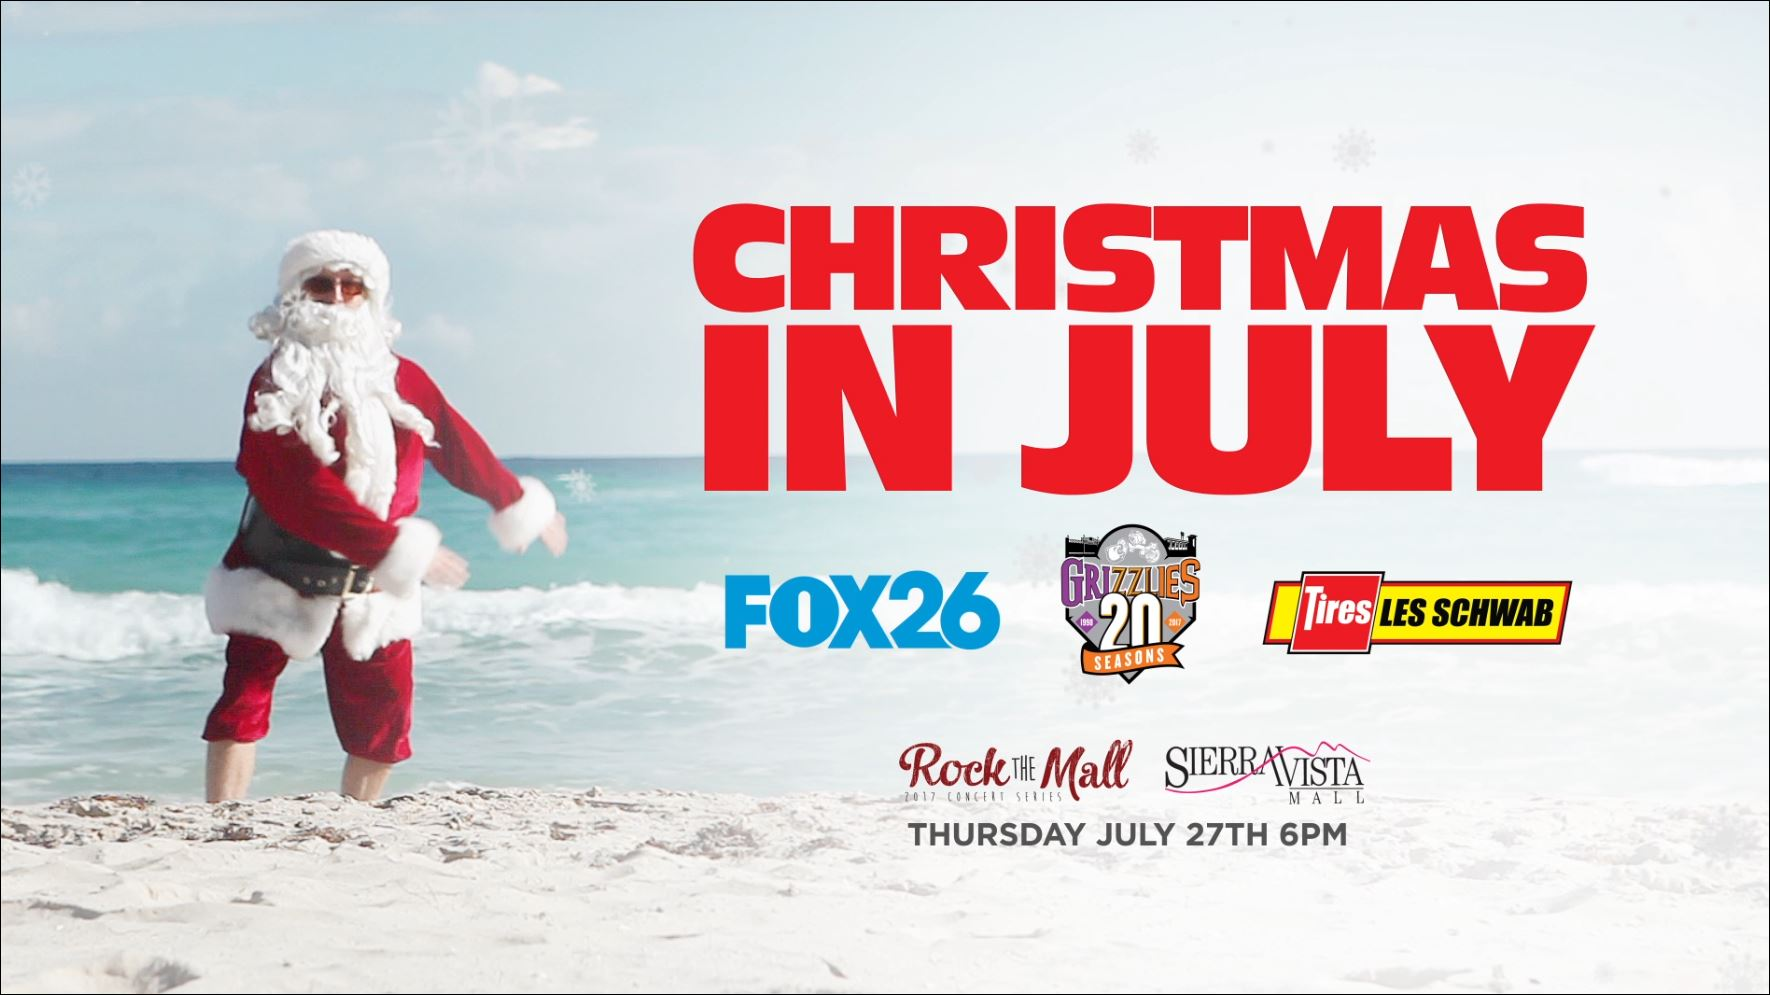 Christmas in July will be at Rock the Mall on Thursday, July 27